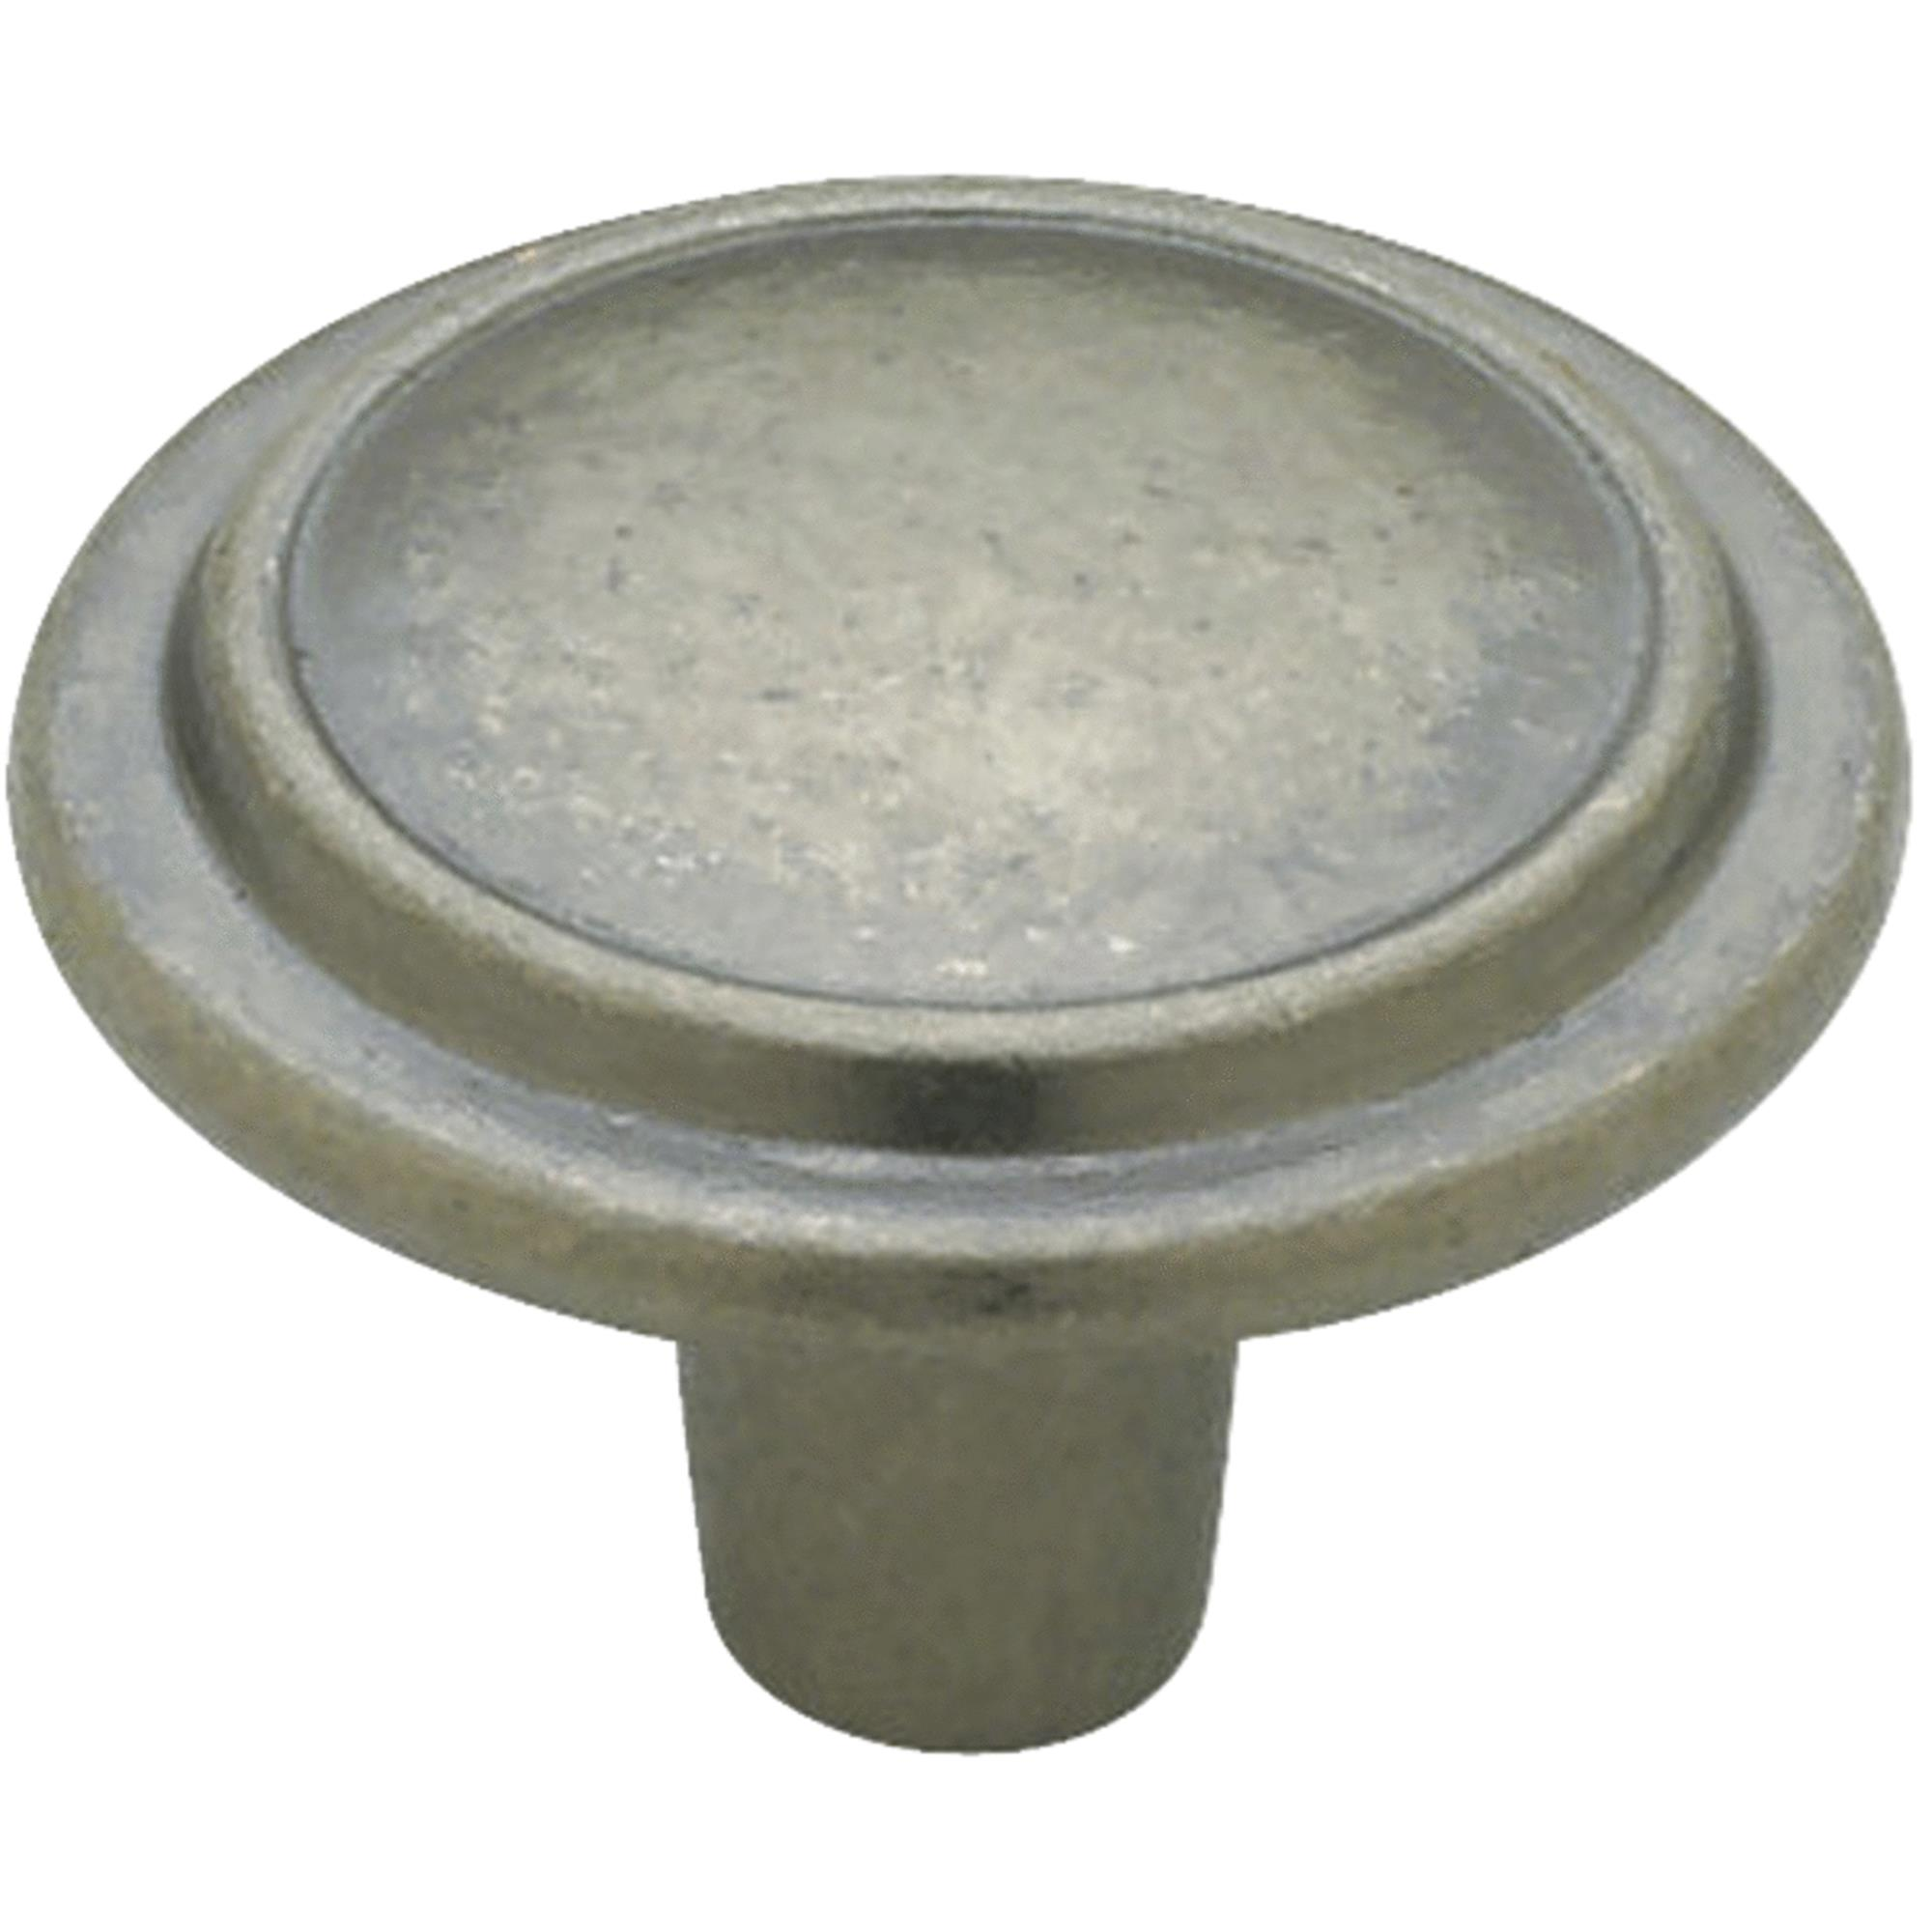 Top Ring Round Cabinet Knob